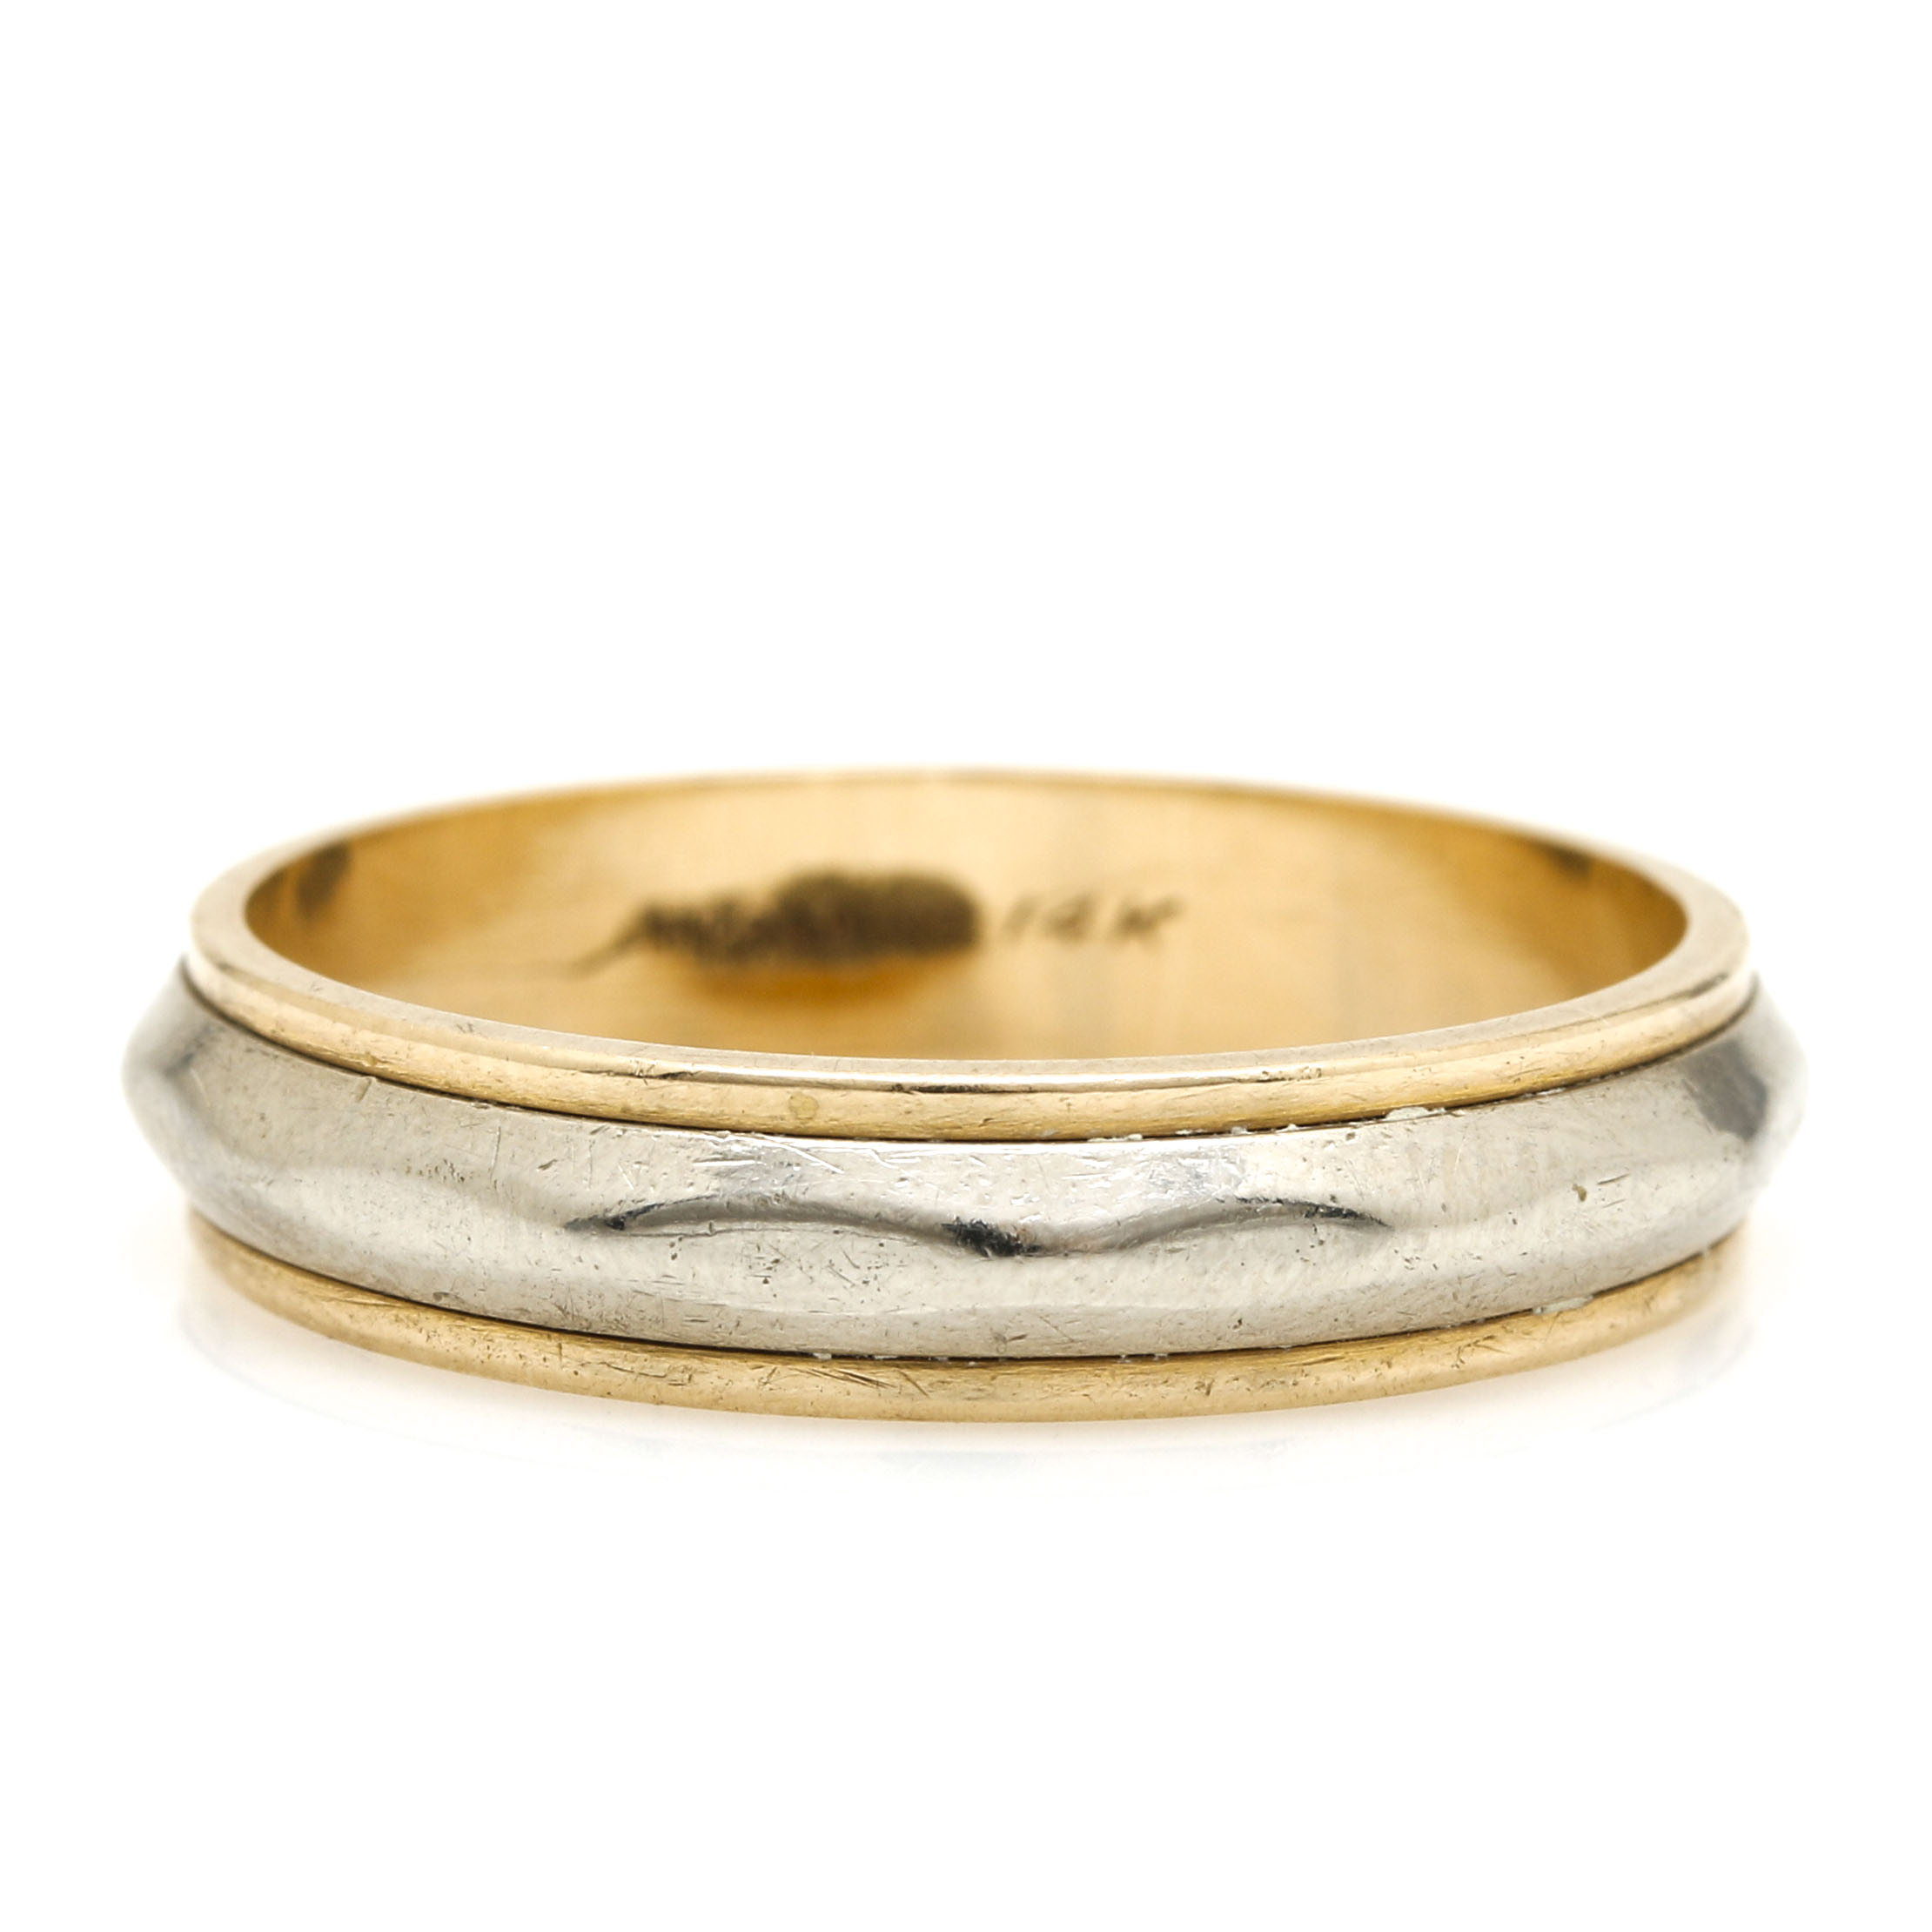 Rings O Bliss 14K Yellow and White Wedding Band EBTH